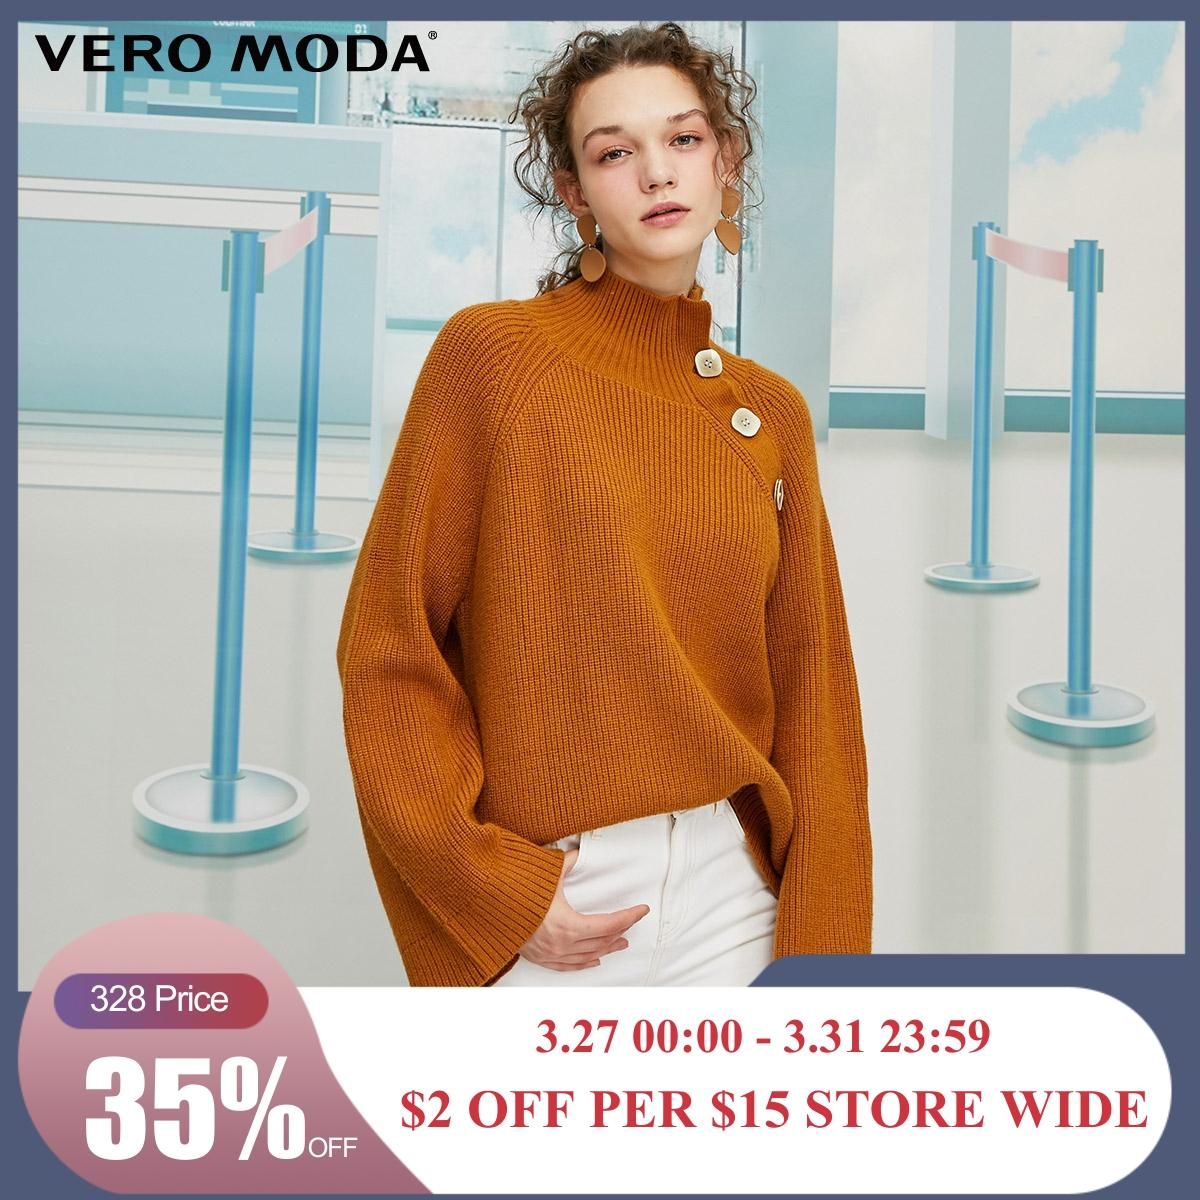 Vero Moda Women's High-necked Flared Sleeves Loose Fit Short Sweater Knit Top | 319313566